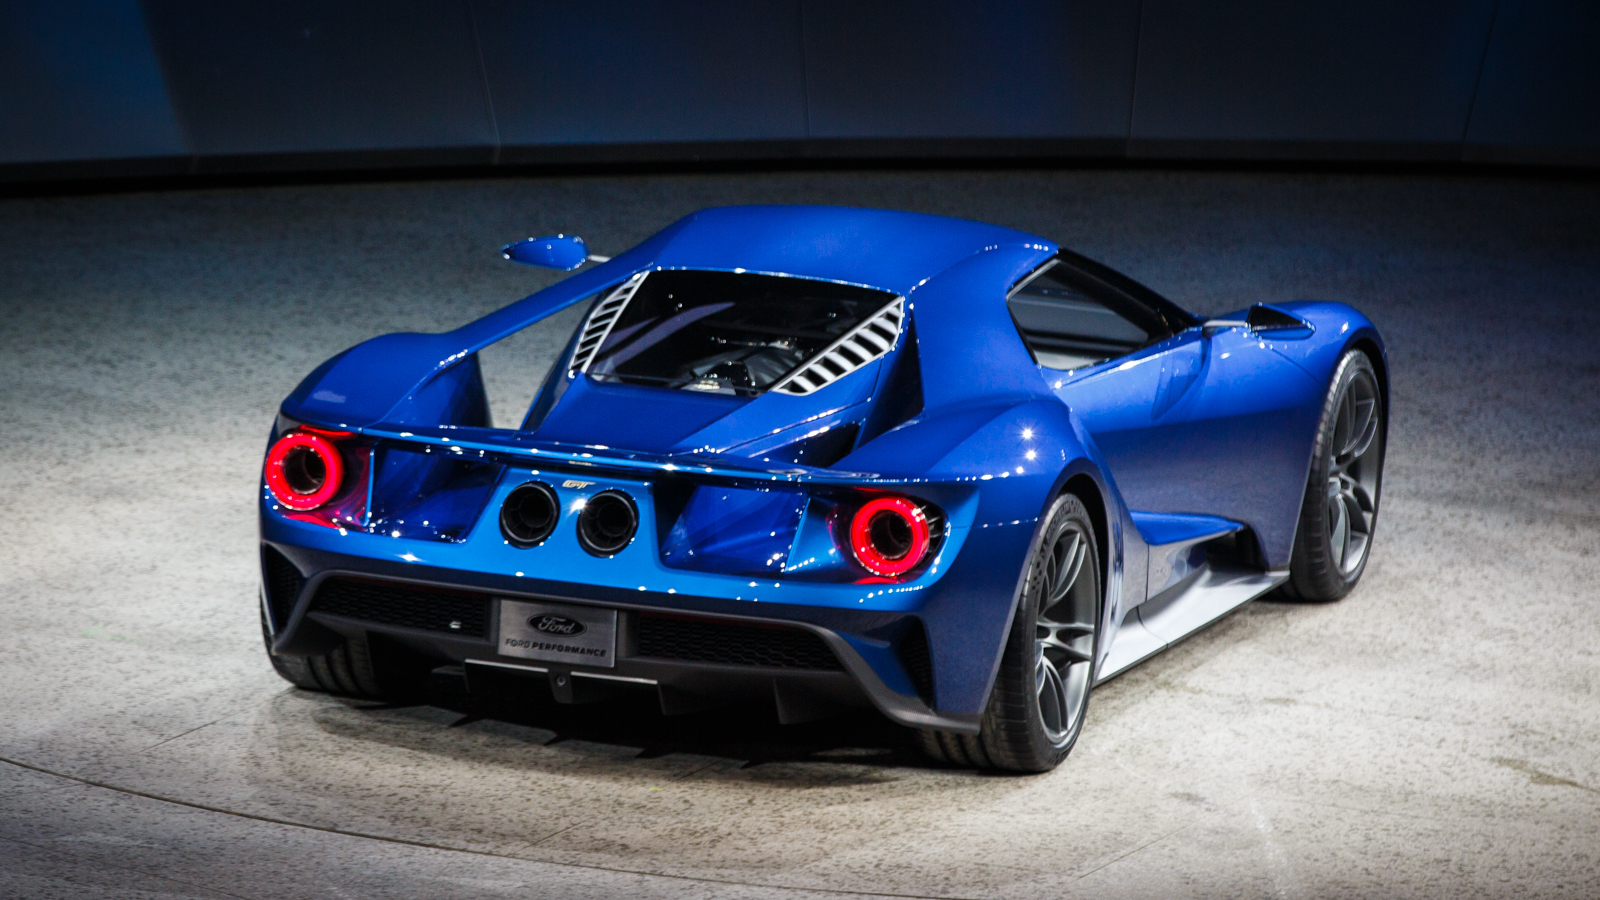 The new Ford GT is a 600-horsepower, twin-turbo, carbon-fiber monster